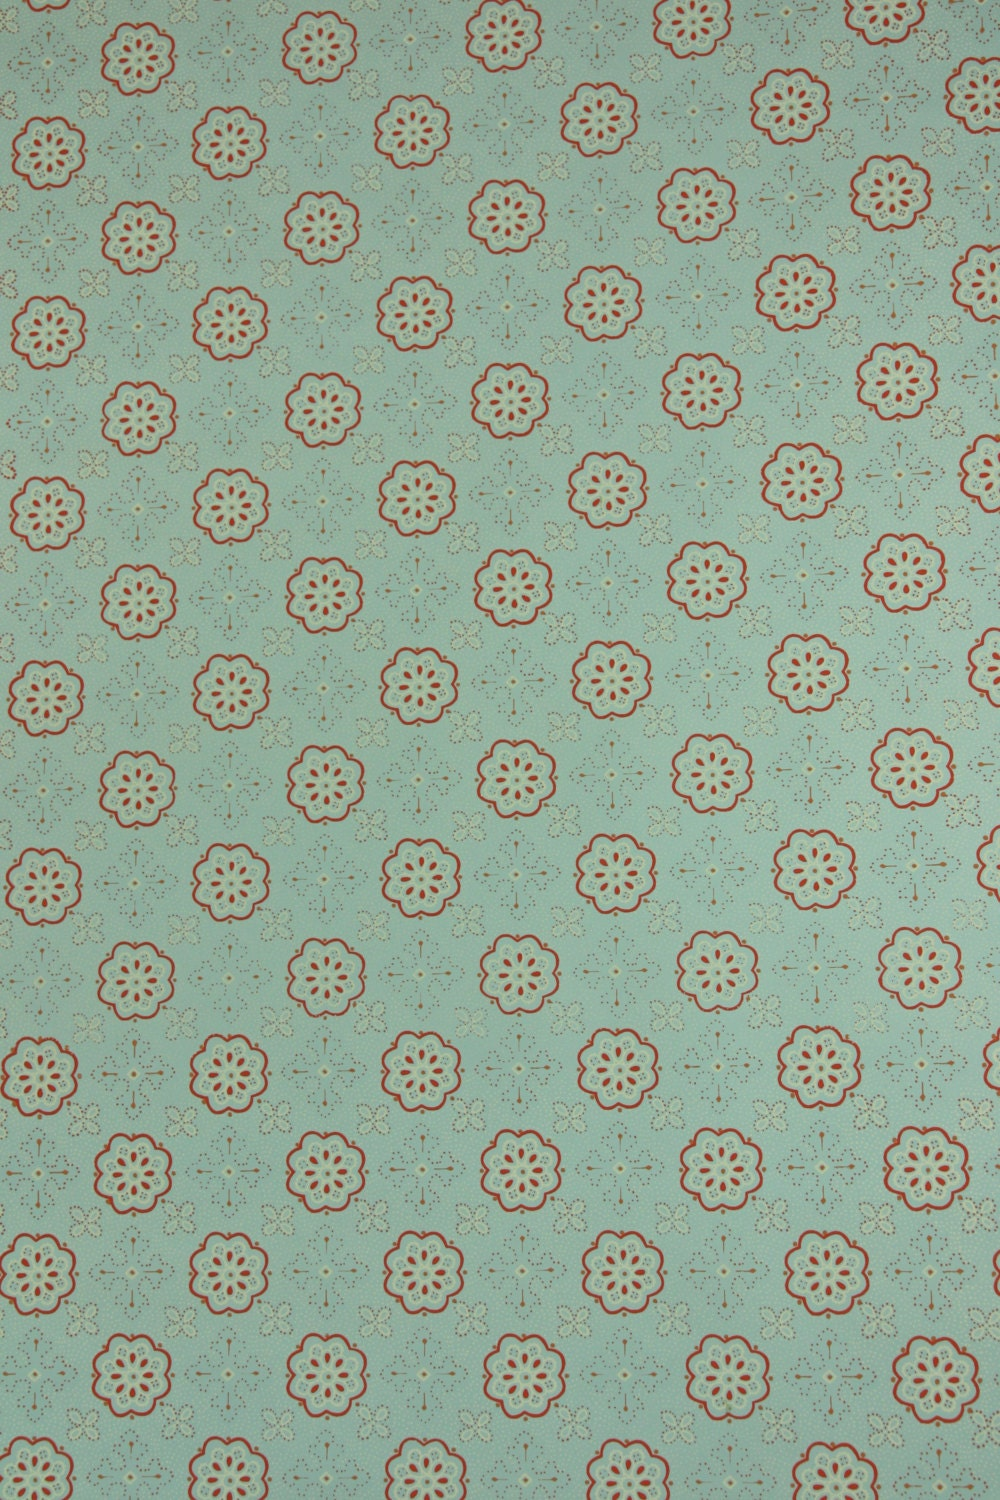 1950s vintage wallpaper by the yard geometric by